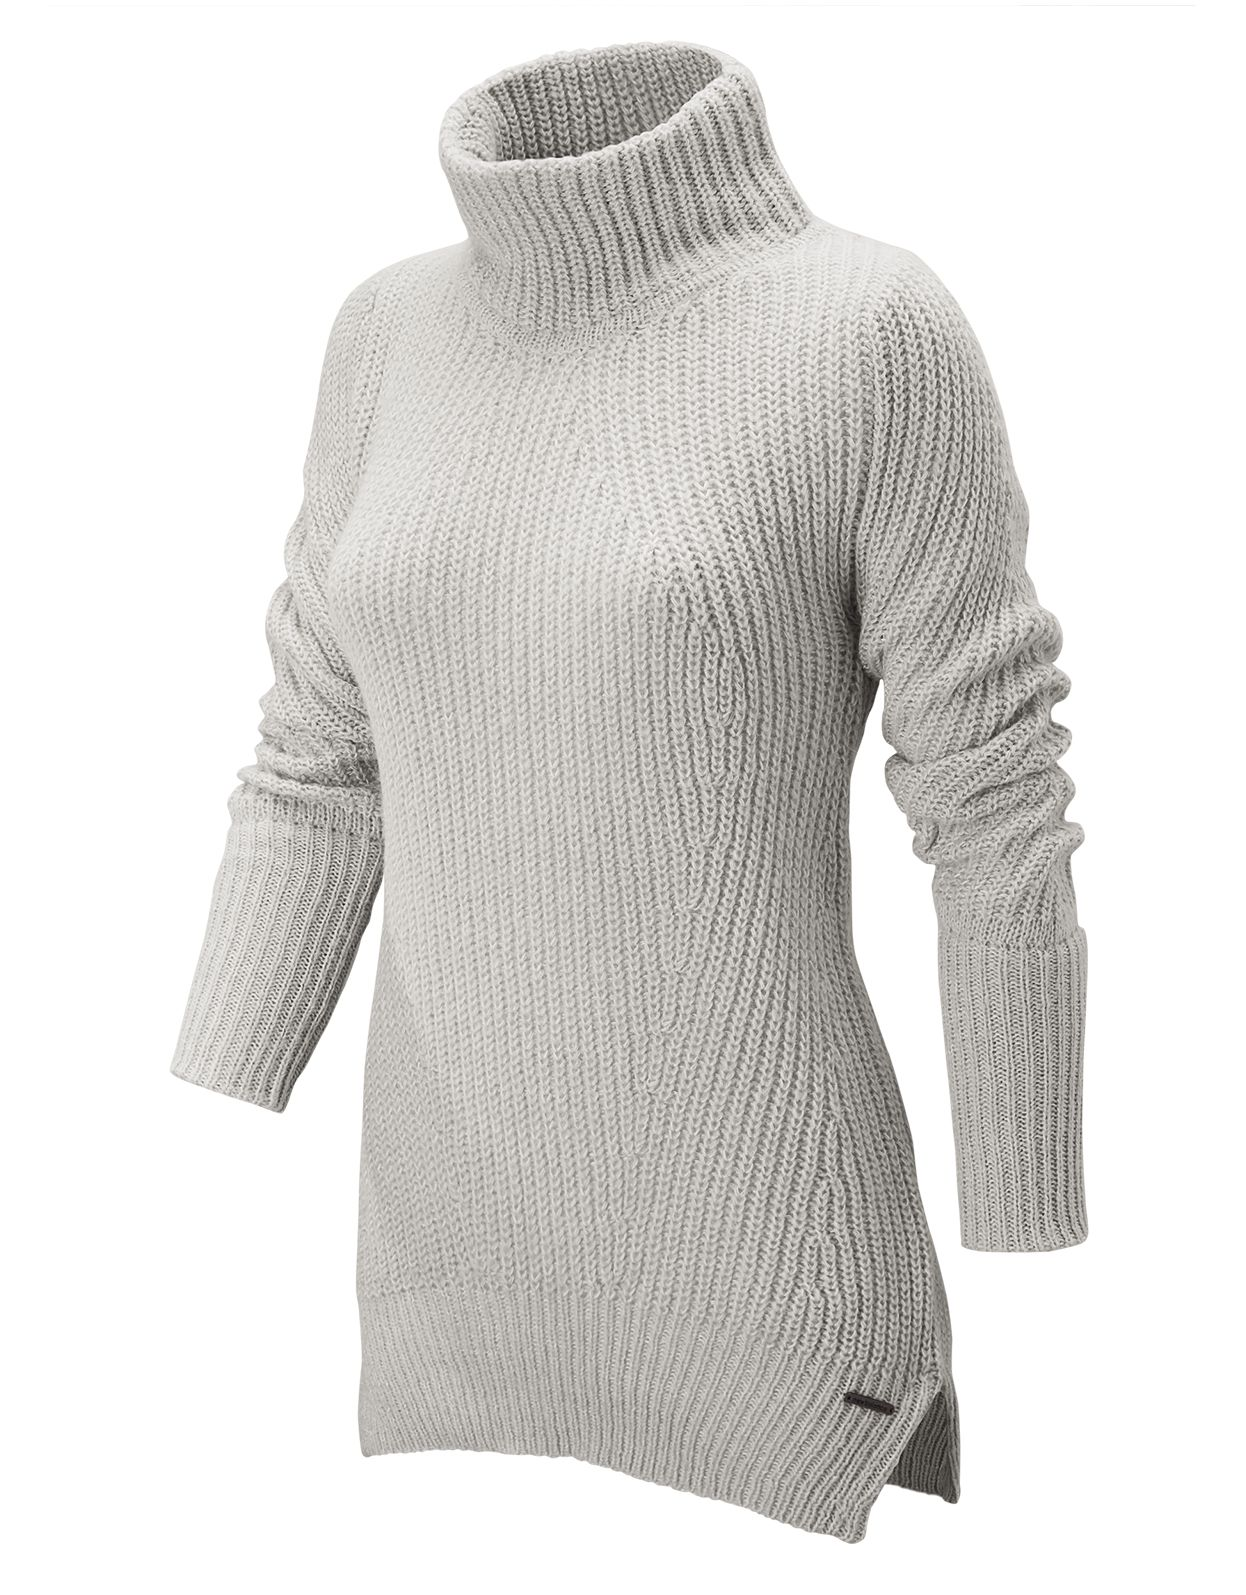 Women's Cozy Pullover Sweater